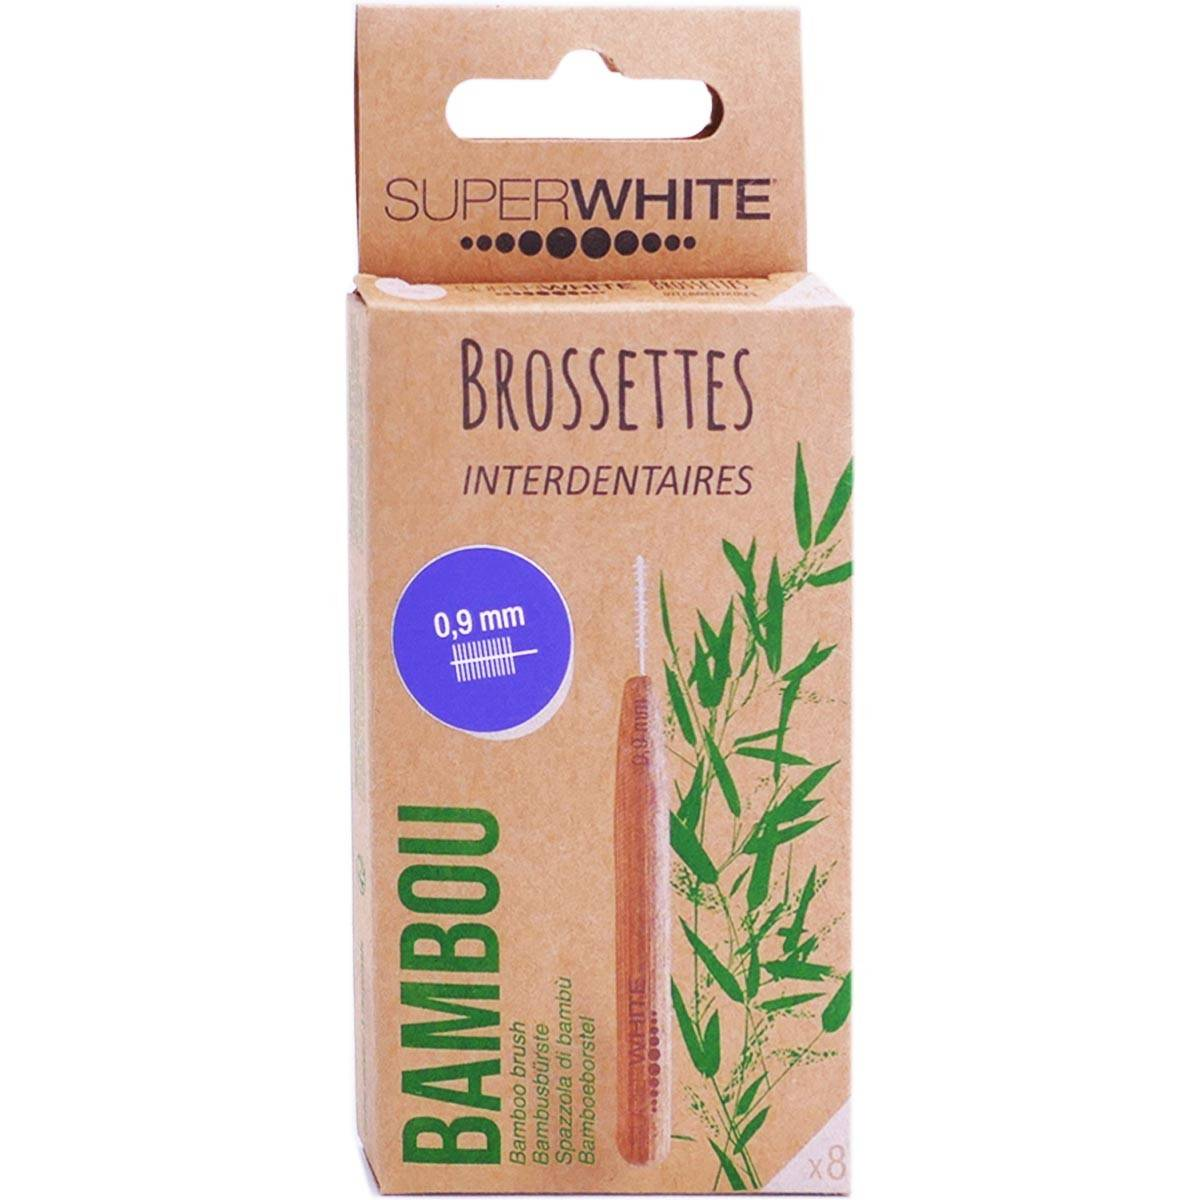 Superwhite brossettes interdentaires bambou 0.9mm